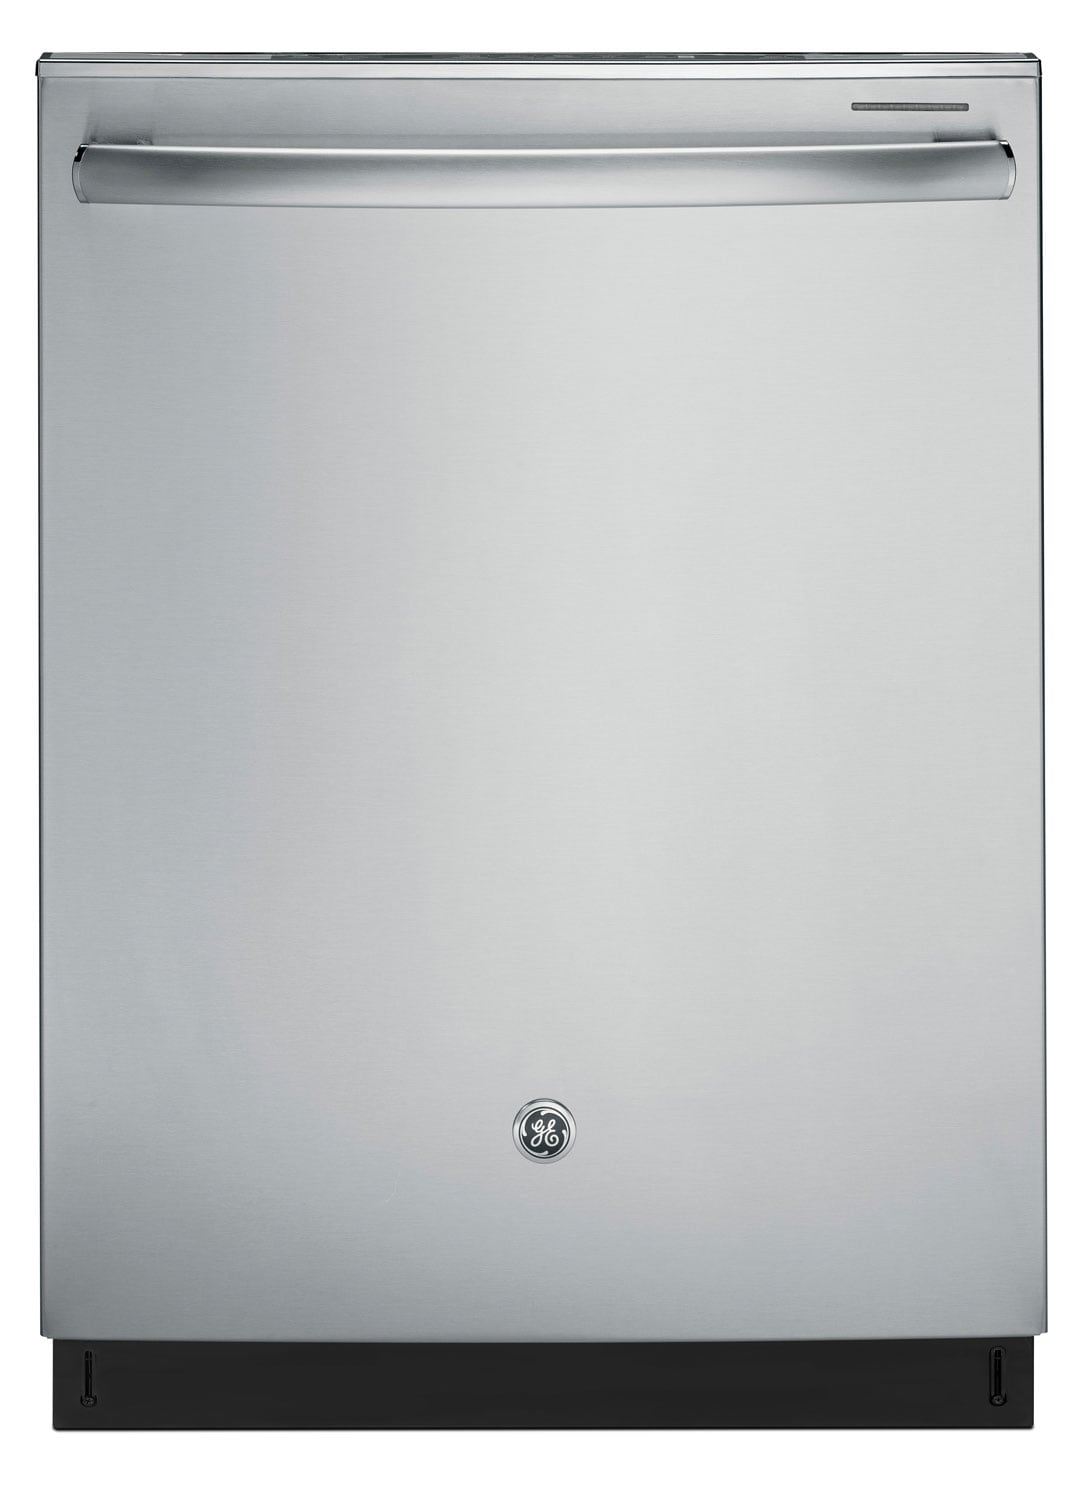 "Clean-Up - GE® 24"" Built-In Dishwasher - Stainless Steel"